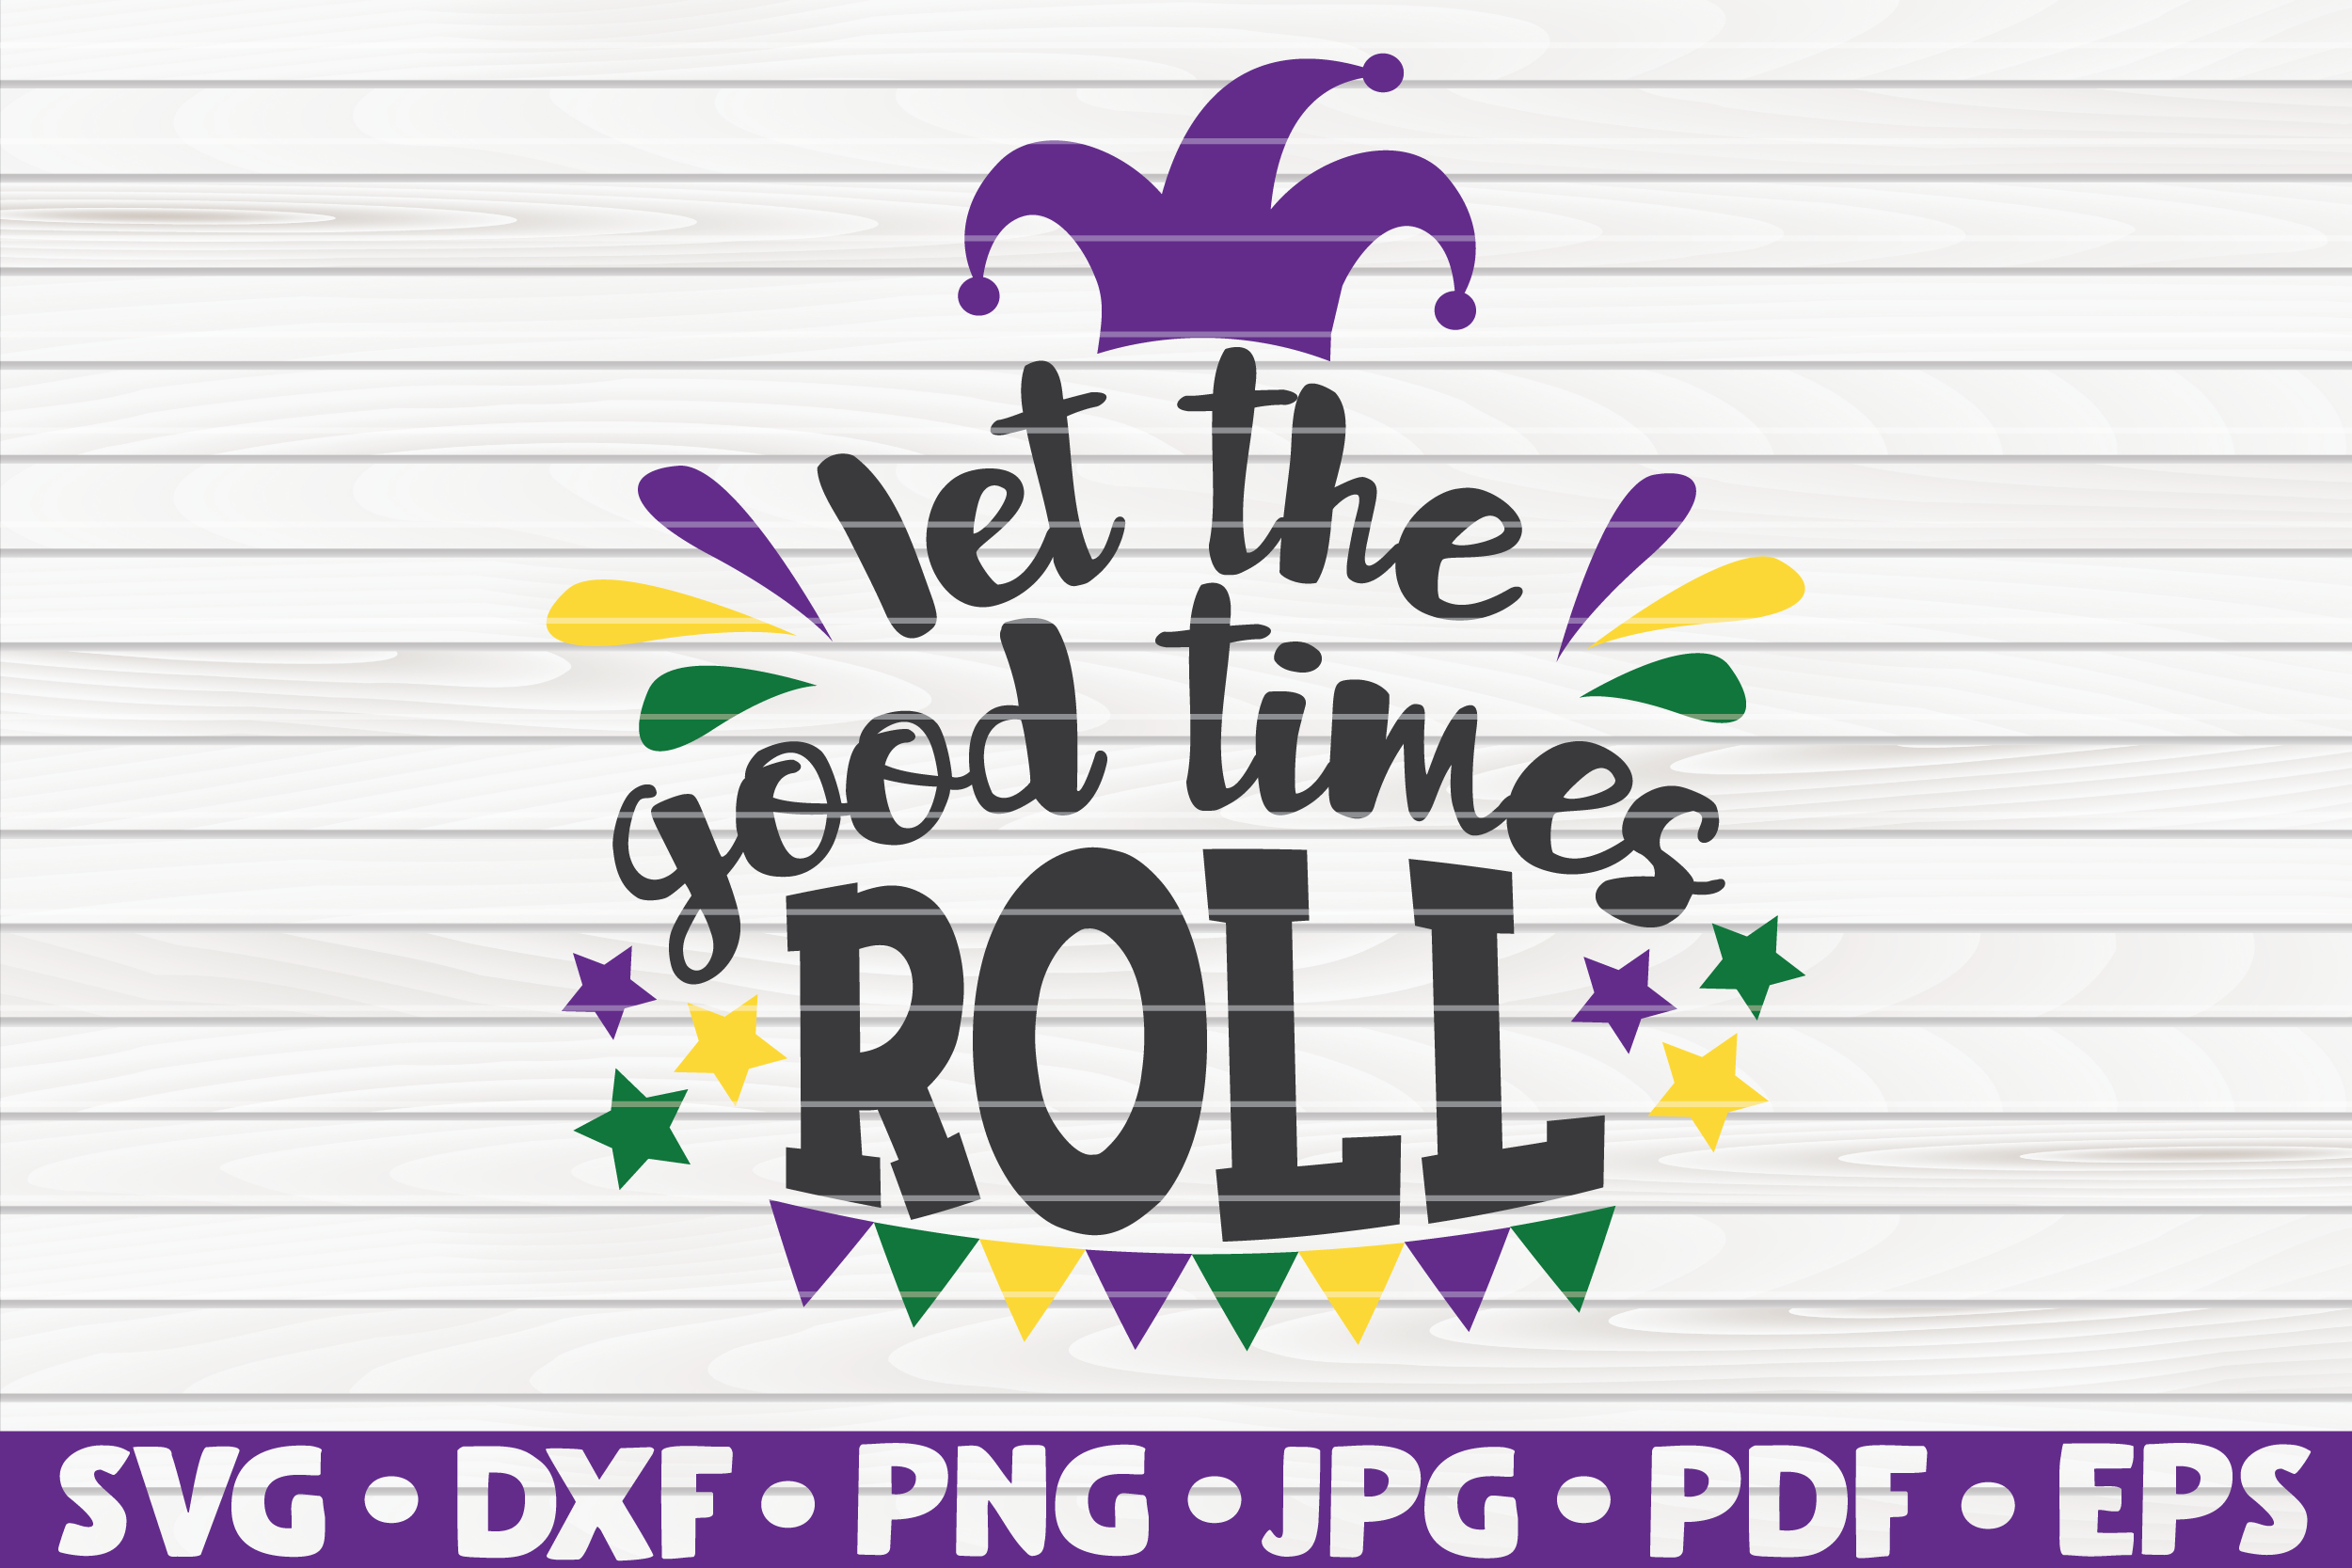 Download Free Let The Good Times Roll Graphic By Mihaibadea95 Creative Fabrica for Cricut Explore, Silhouette and other cutting machines.